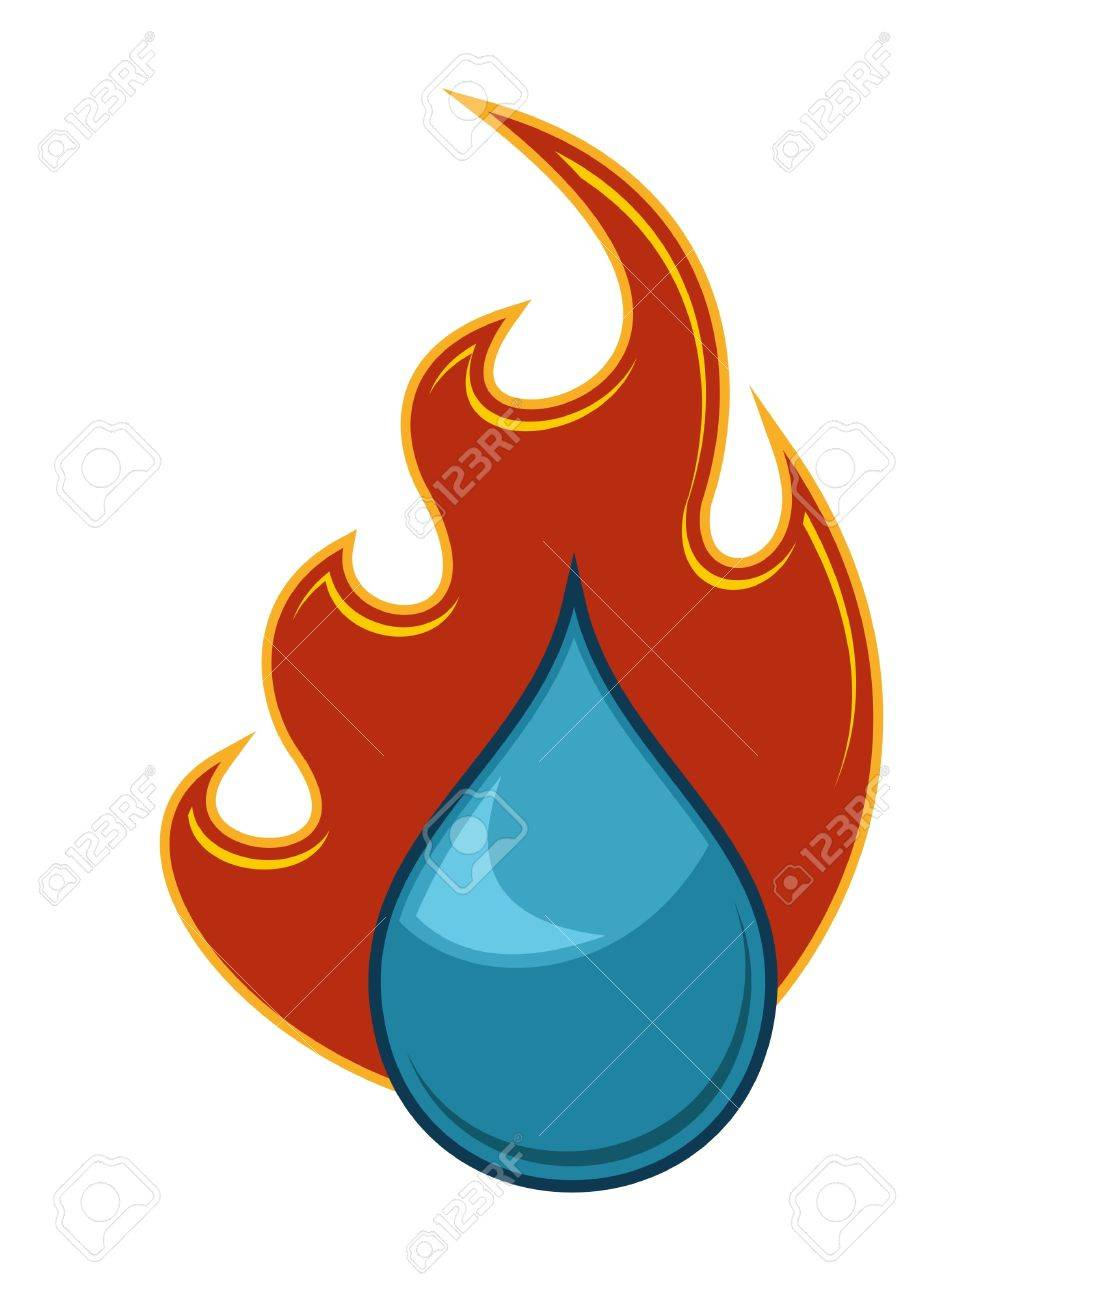 Fire and water royalty free cliparts vectors and stock fire and water stock vector 12153306 biocorpaavc Choice Image